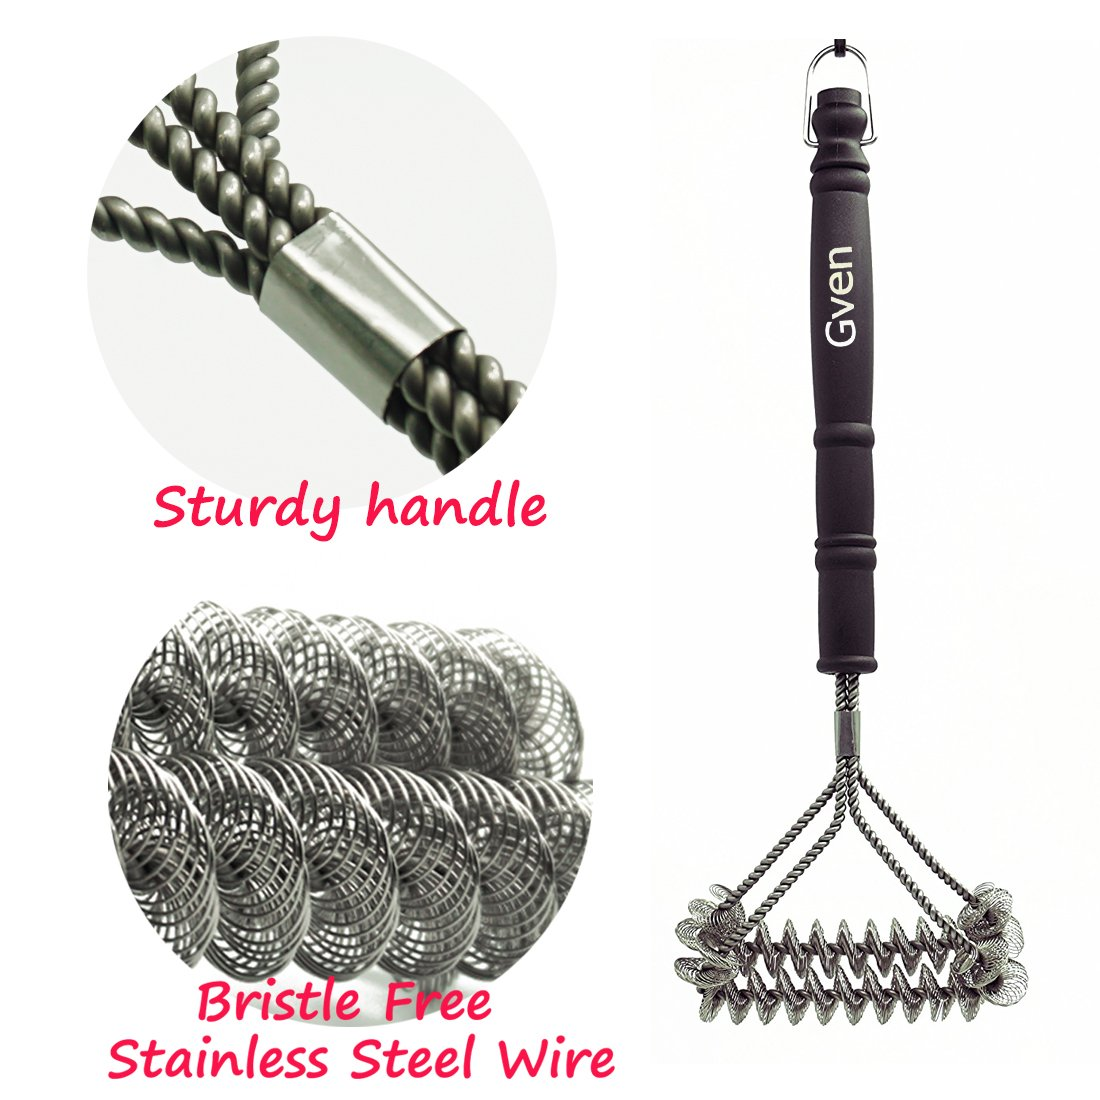 """Grill Brush Bristle Free- BBQ Grill Cleaning Brush And Scraper- Safe 18"""" Weber Grill Cleaning Kit for Stainless Steel, Ceramic, Iron, Gas & Porcelain Barbecue Grates"""